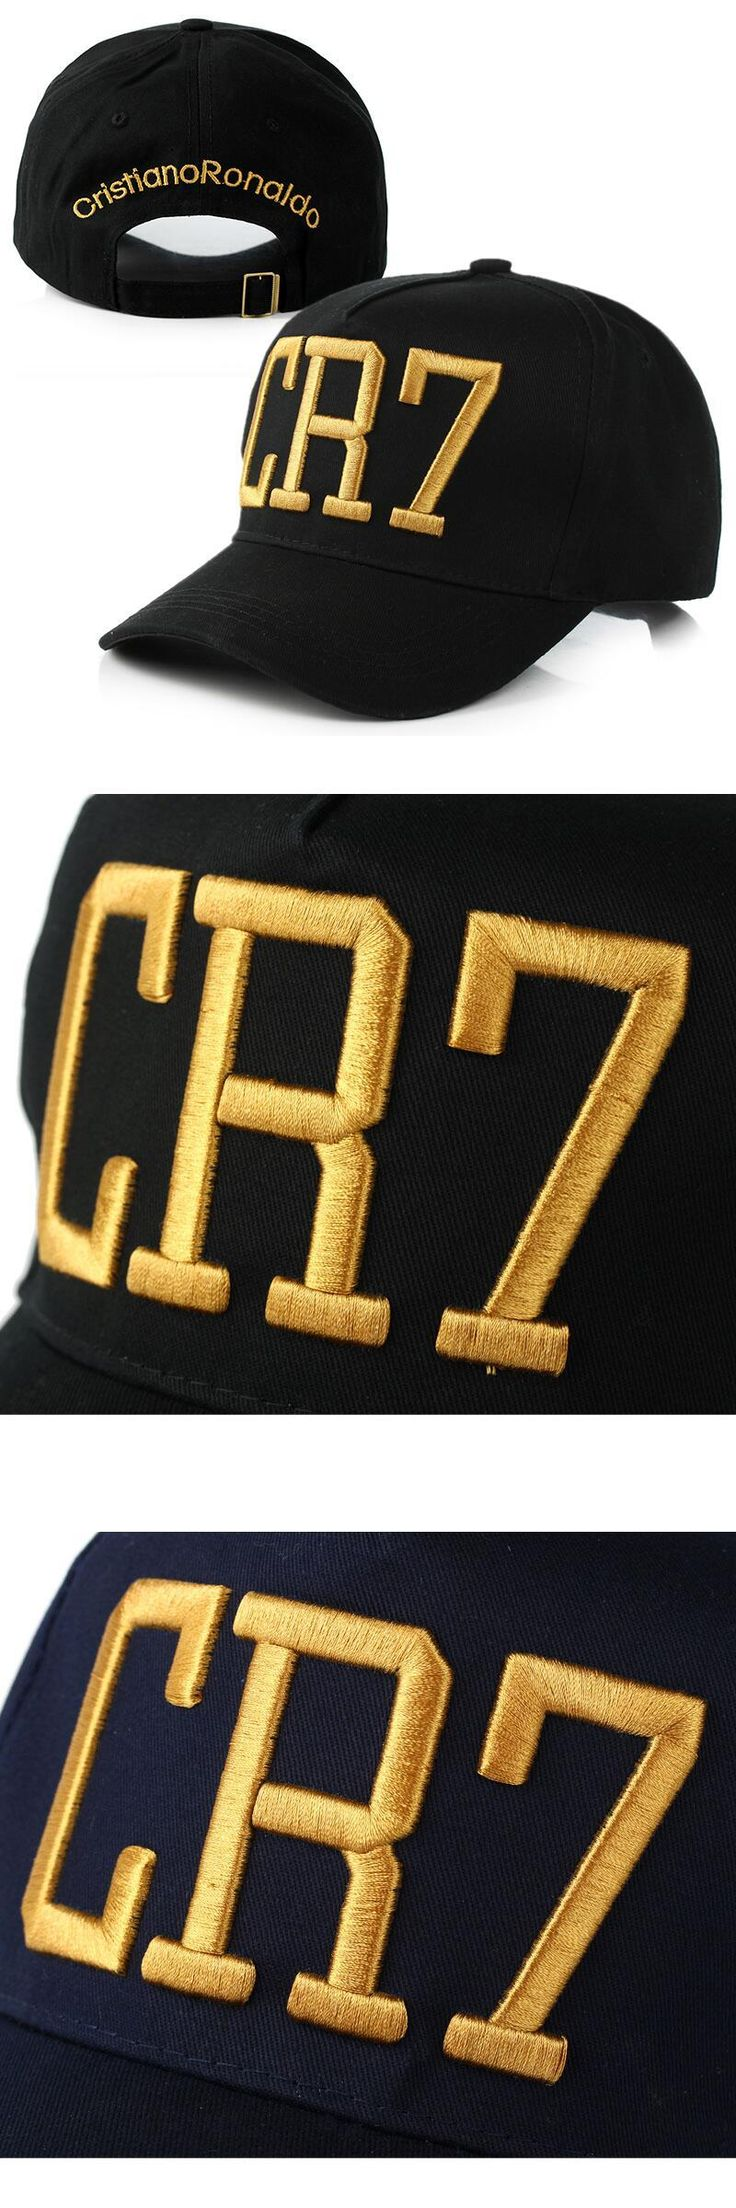 [Visit to Buy] Newest Style Cristiano Ronaldo CR7 Hats Baseball Caps Hip Hop Caps Snapback Hats for Men Women High Quality #Advertisement